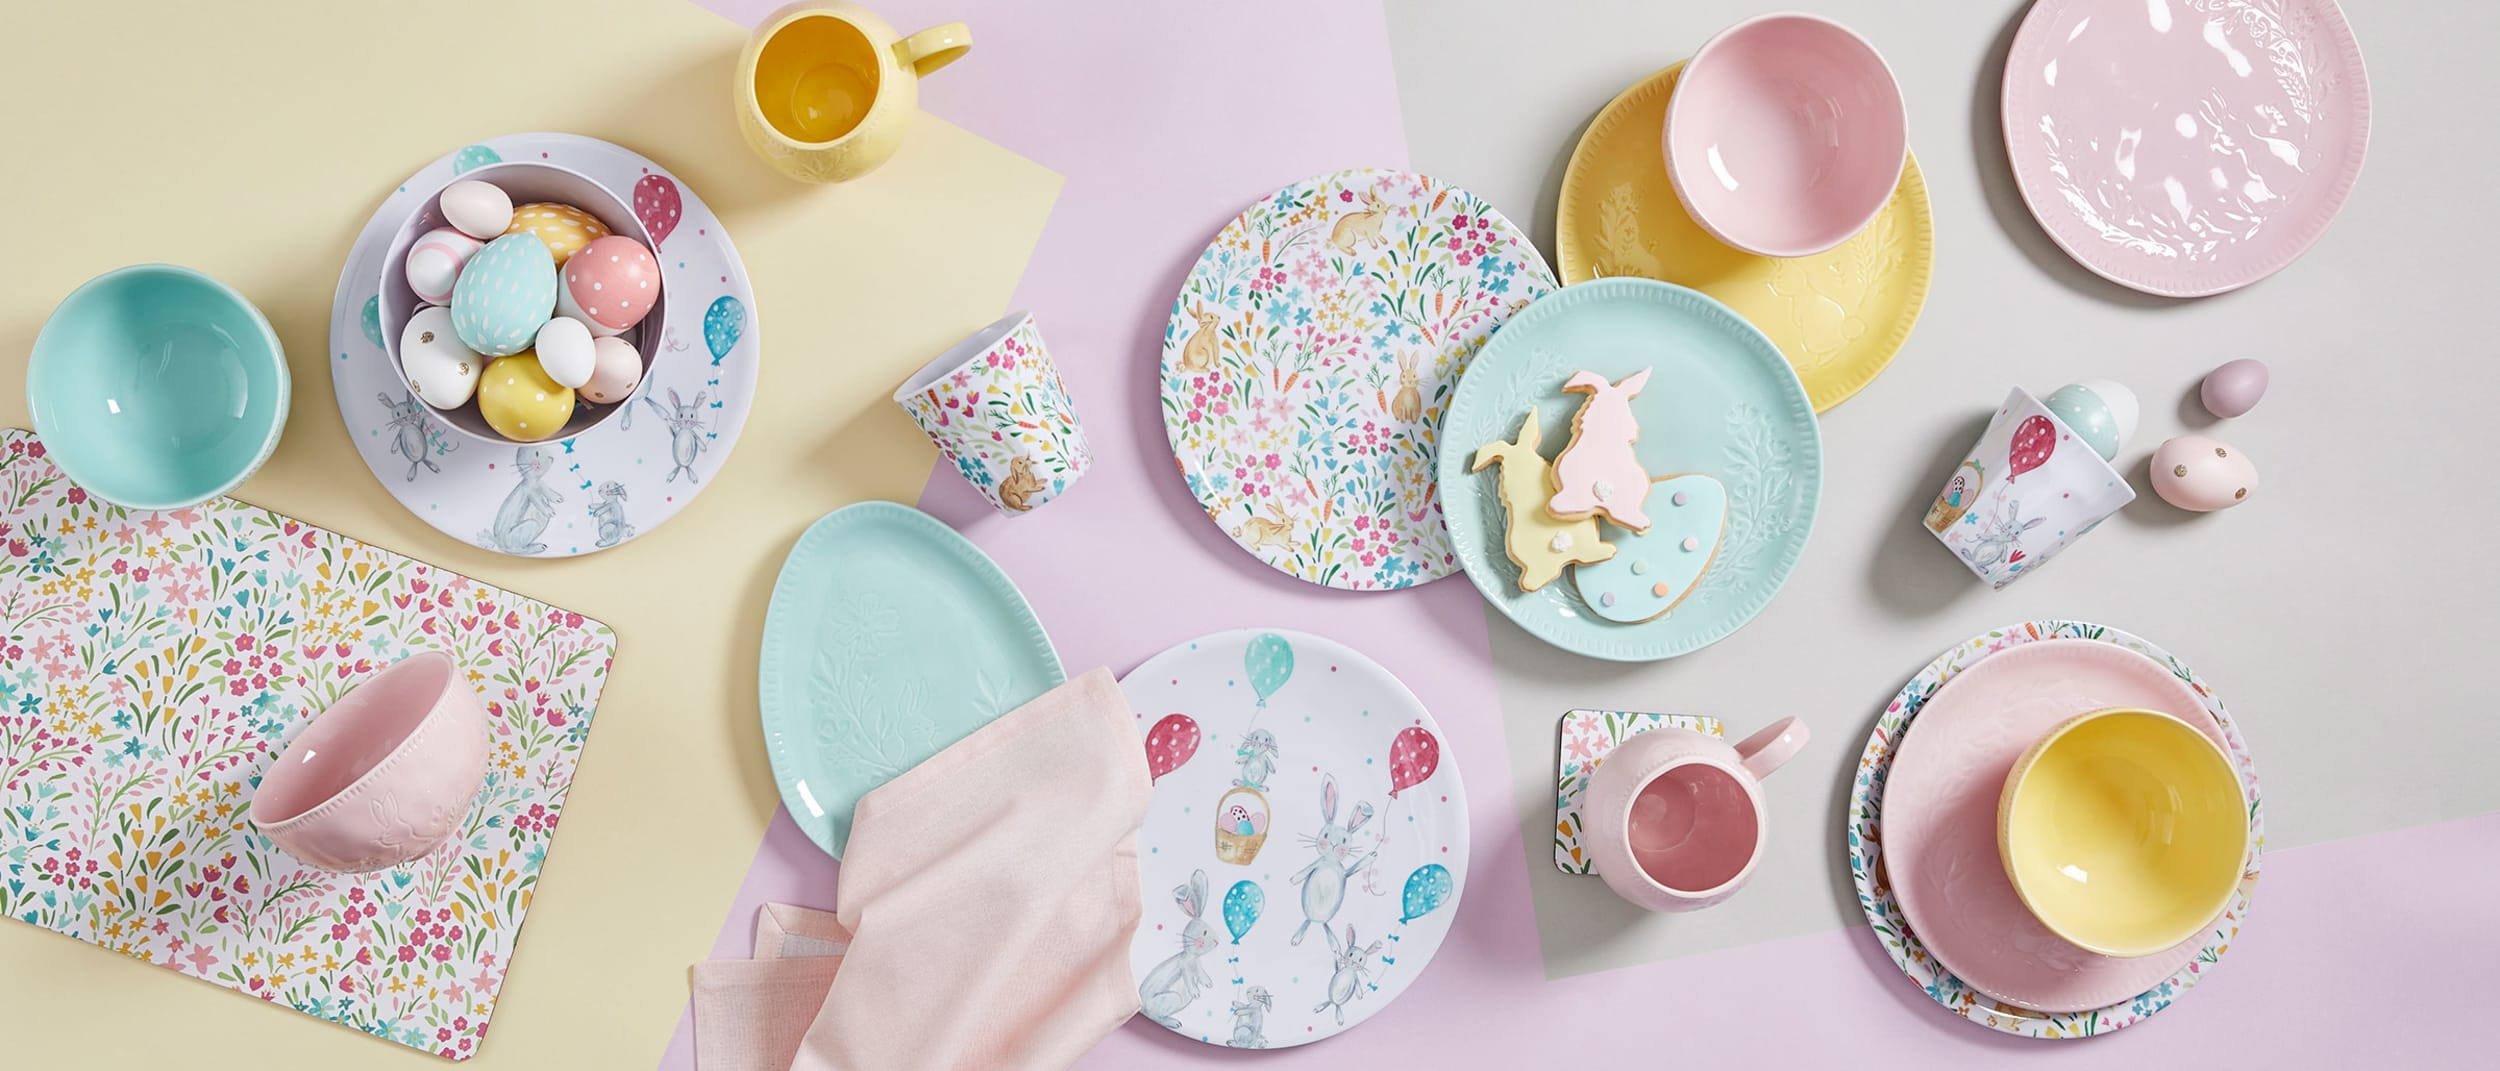 Bed Bath N' Table: 50% off Easter